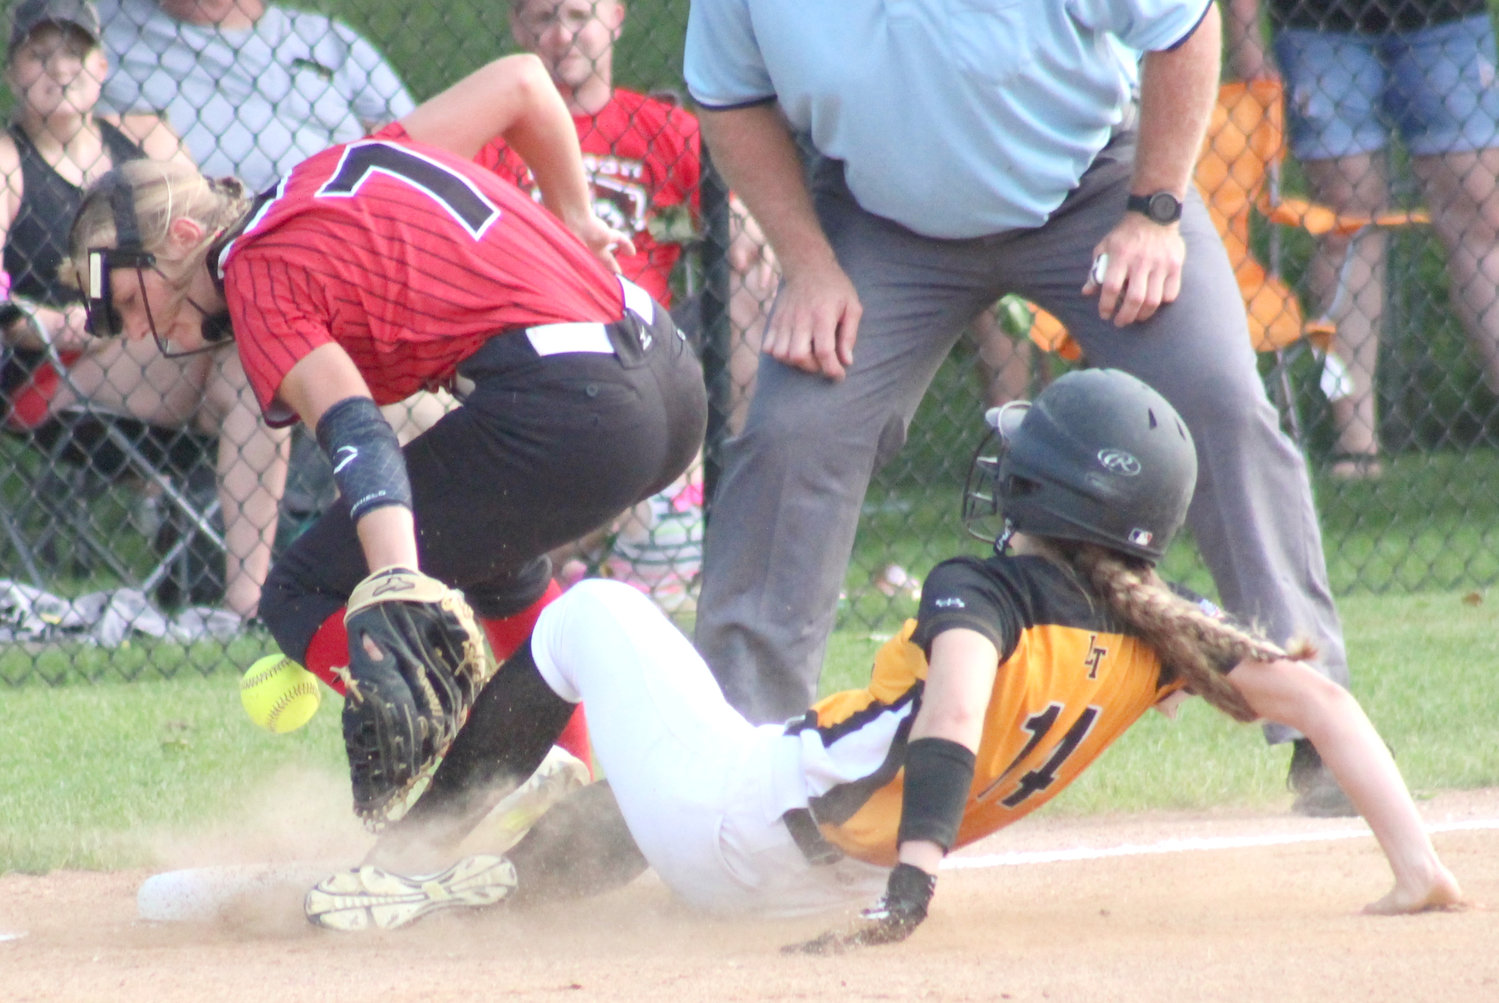 Lone Tree's Holley Johnson slides into third base safely in the first inning of the Lions' playoff loss to Lisbon on July 17.